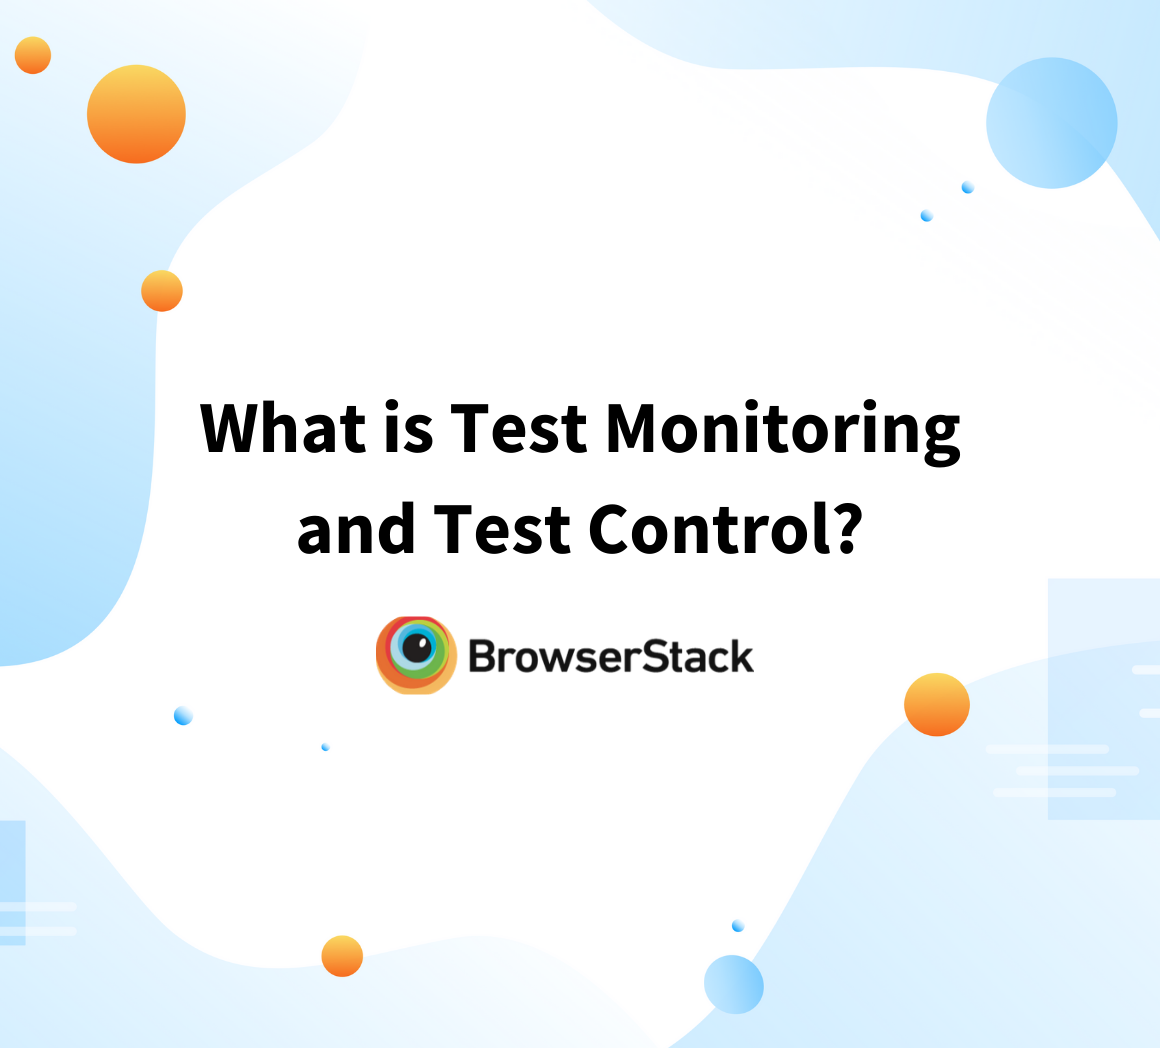 Test Monitoring & Test Control